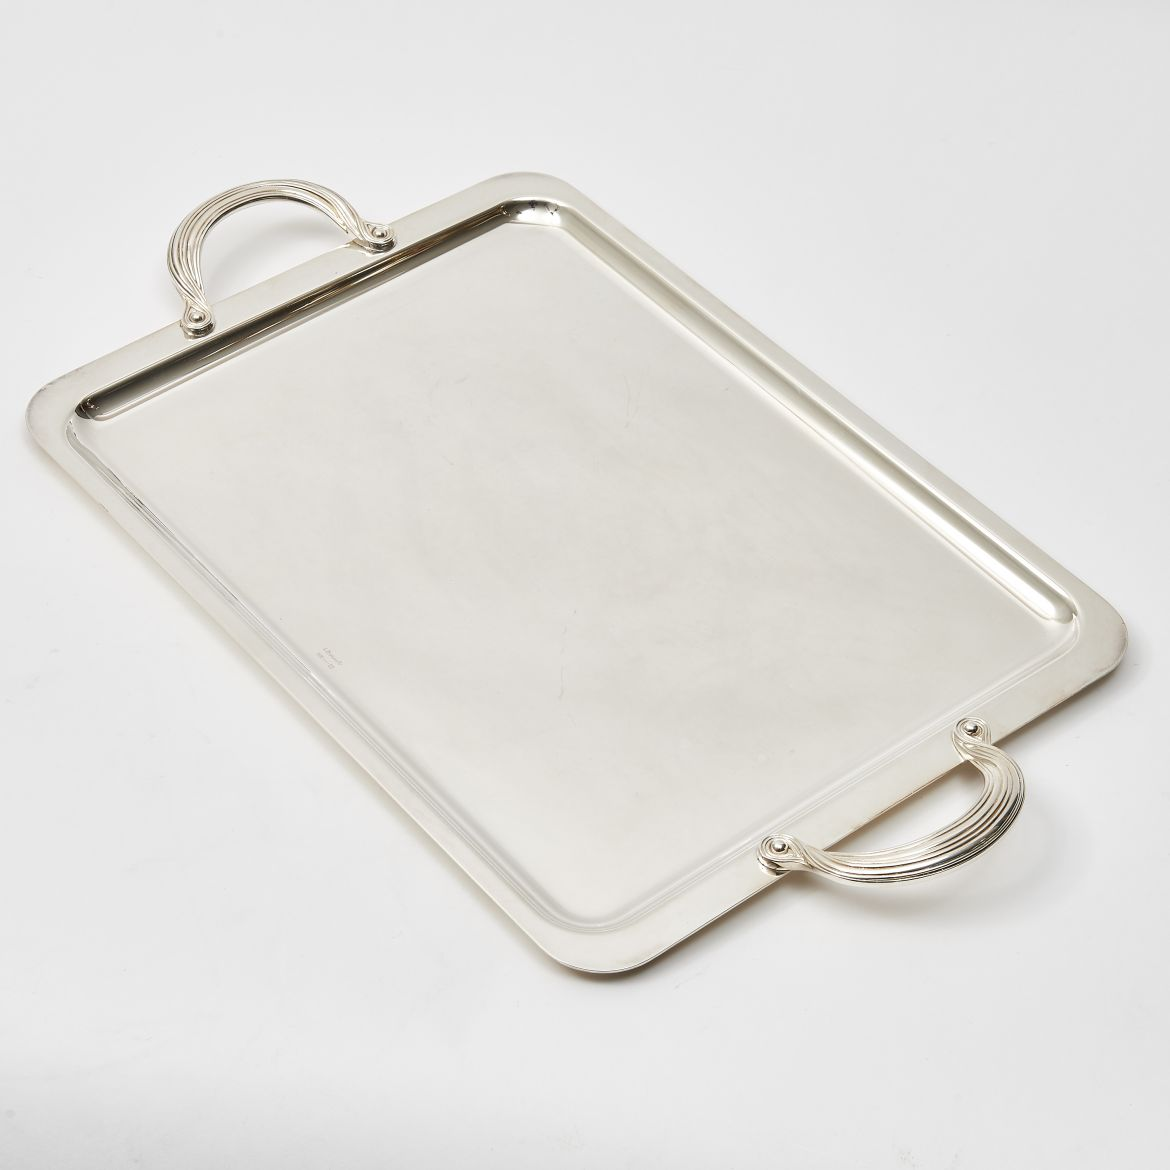 Silver Plate Tray With Ribbon Handles